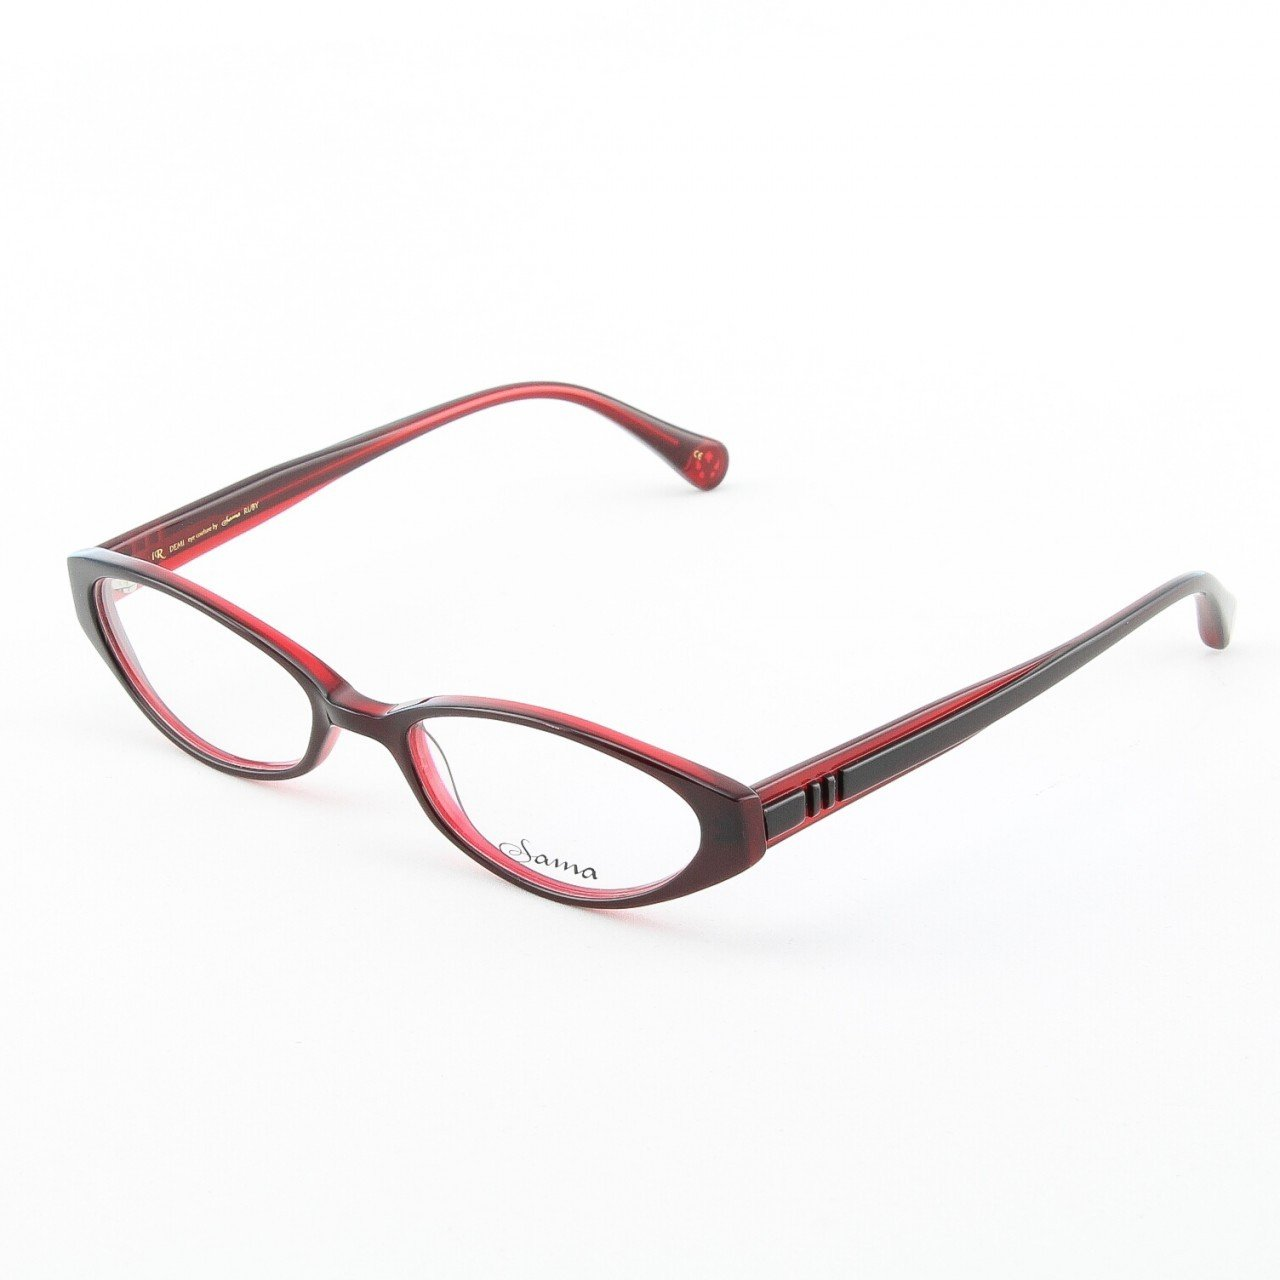 Loree Rodkin Demi Eyeglasses by Sama Col. Ruby with Clear Lenses